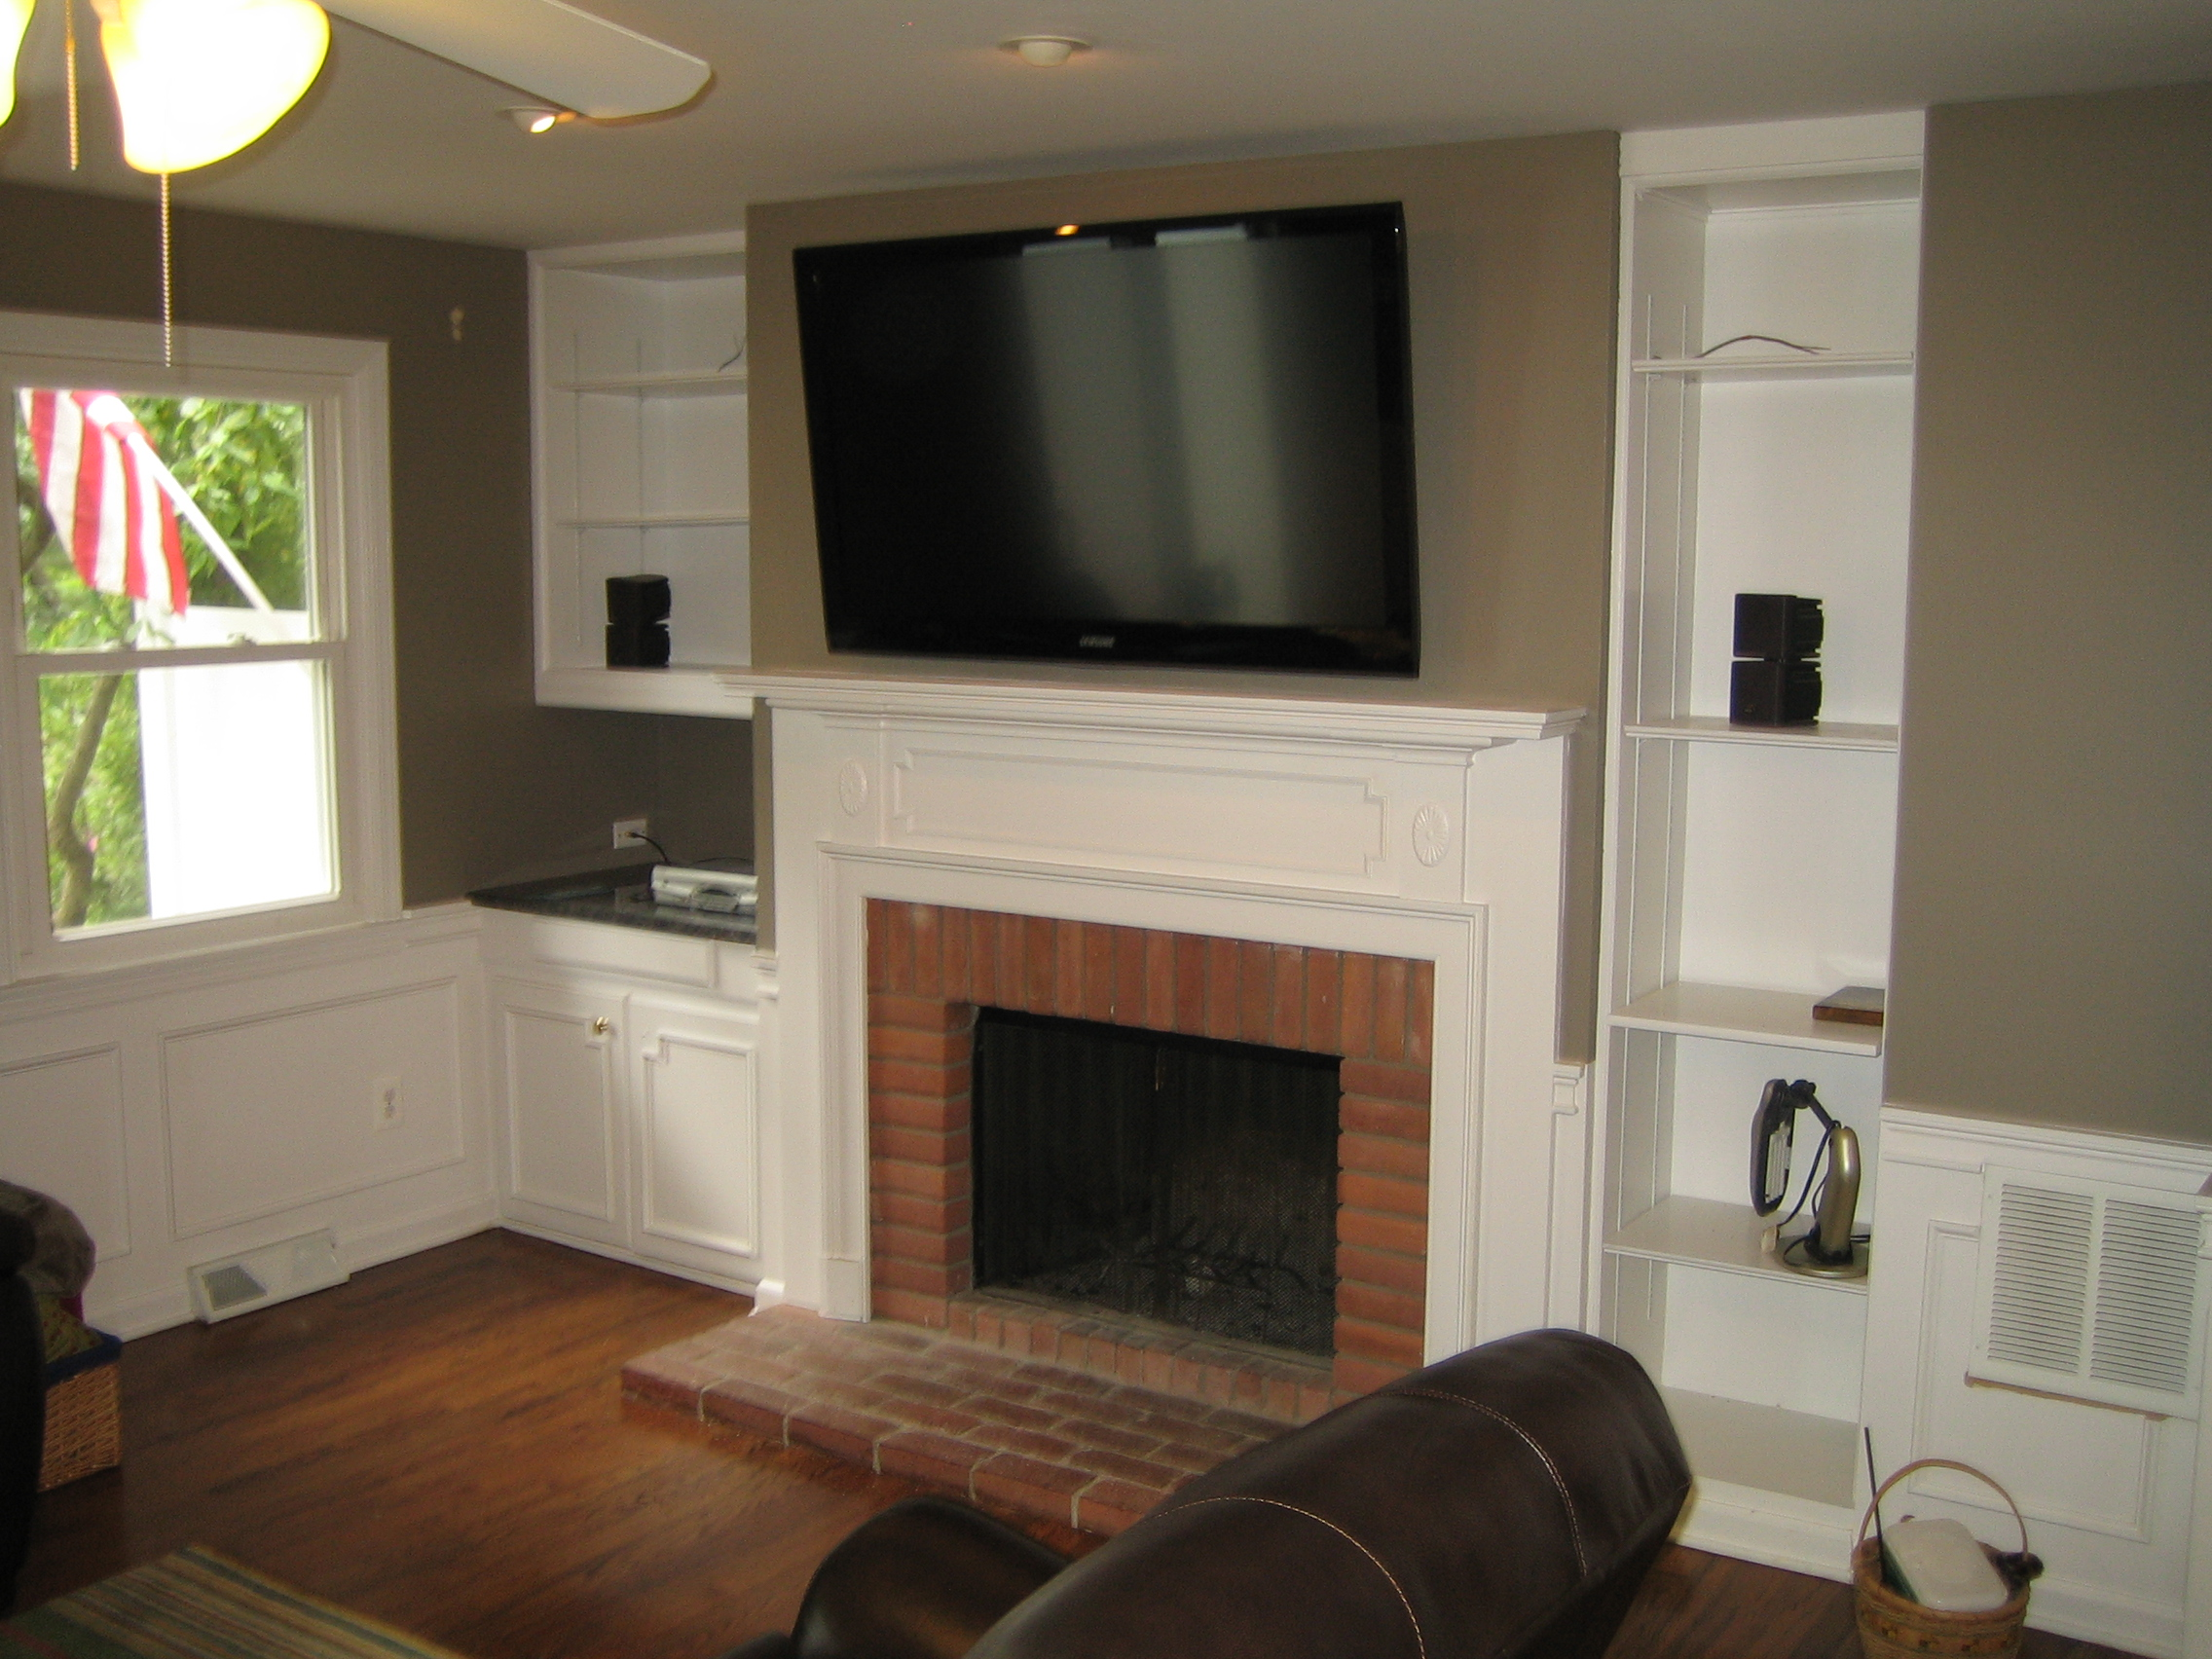 Woodbridge Ct Tv Mounted Over Fireplace All Wires Hidden